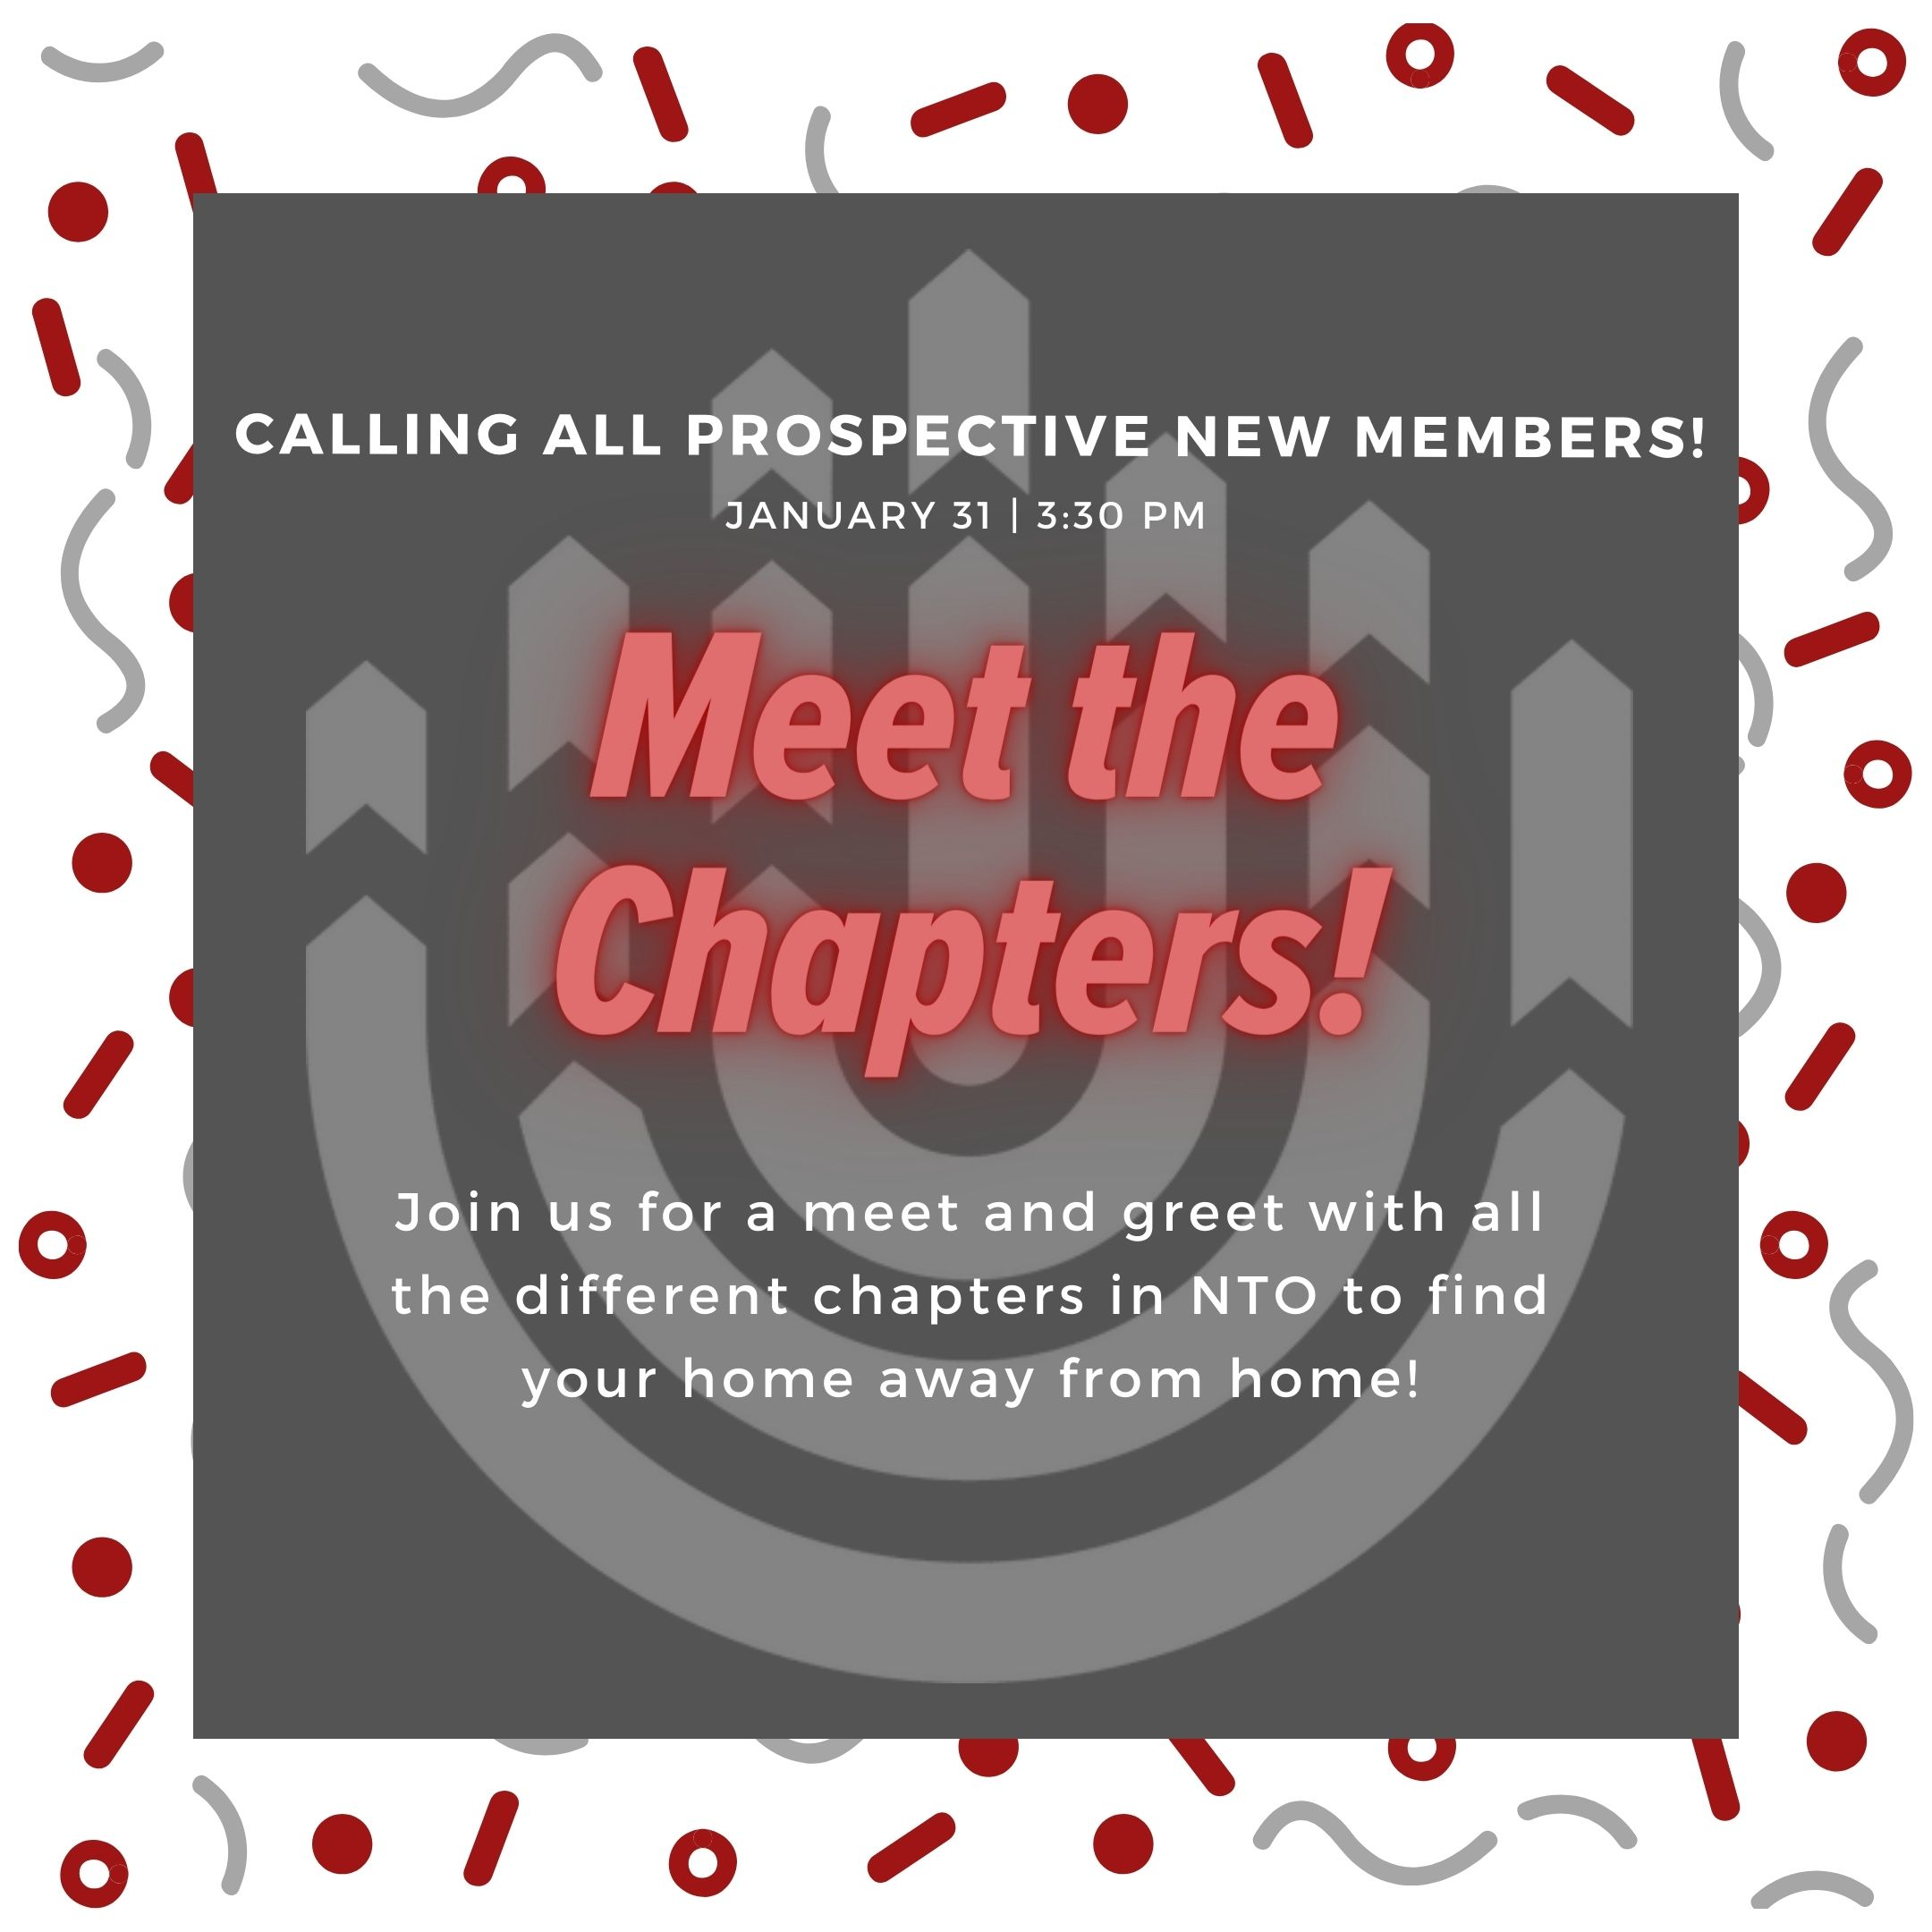 Meet the Chapters image